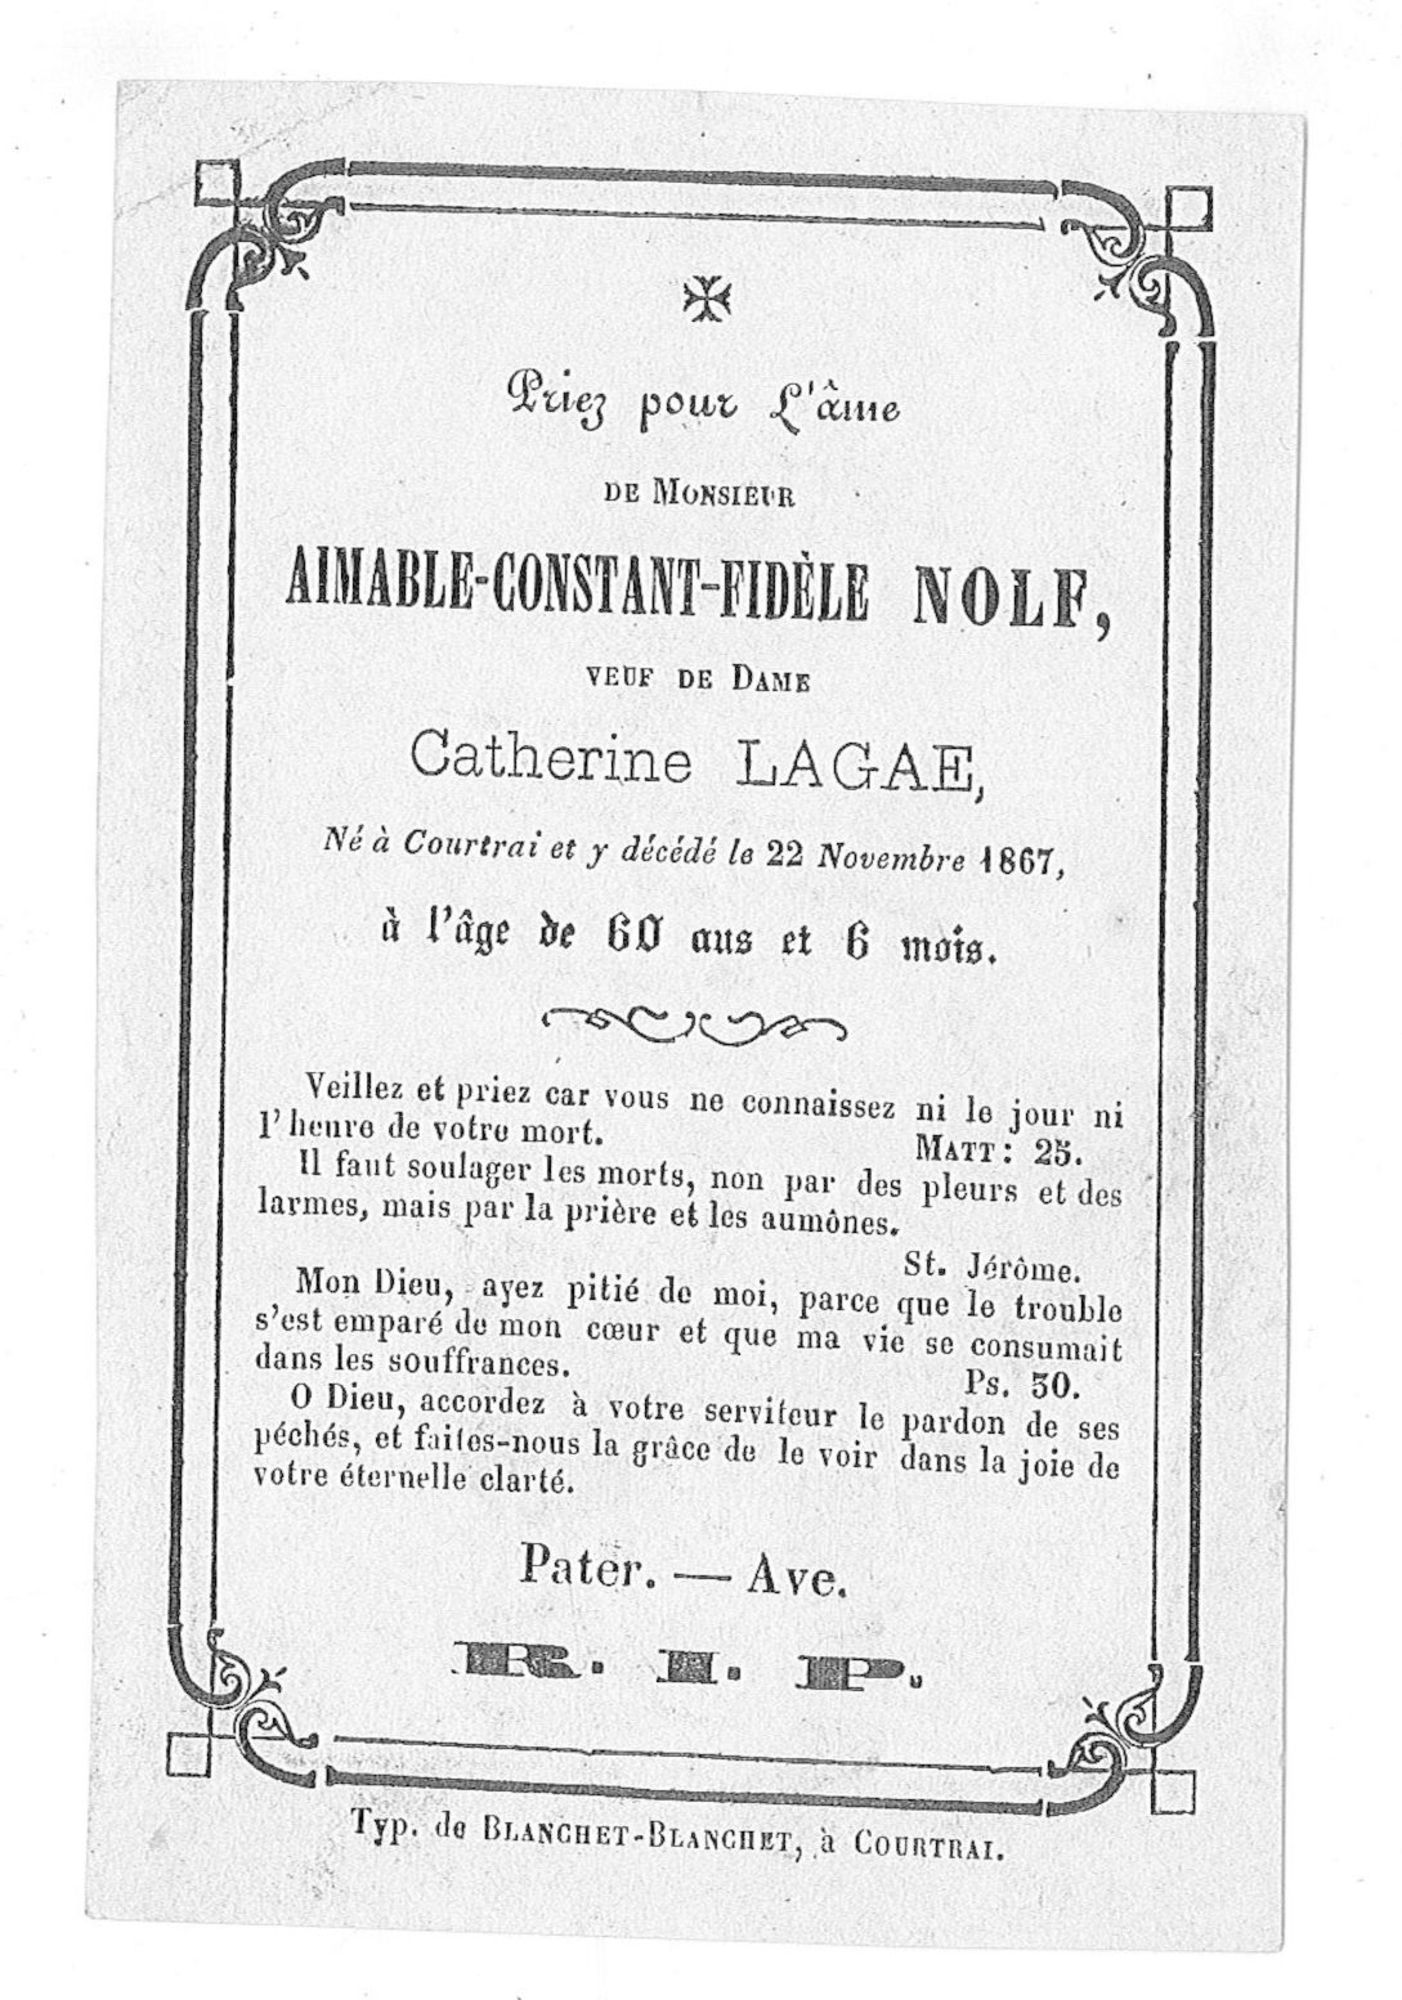 Aimable-Constant-Fidele Nolf